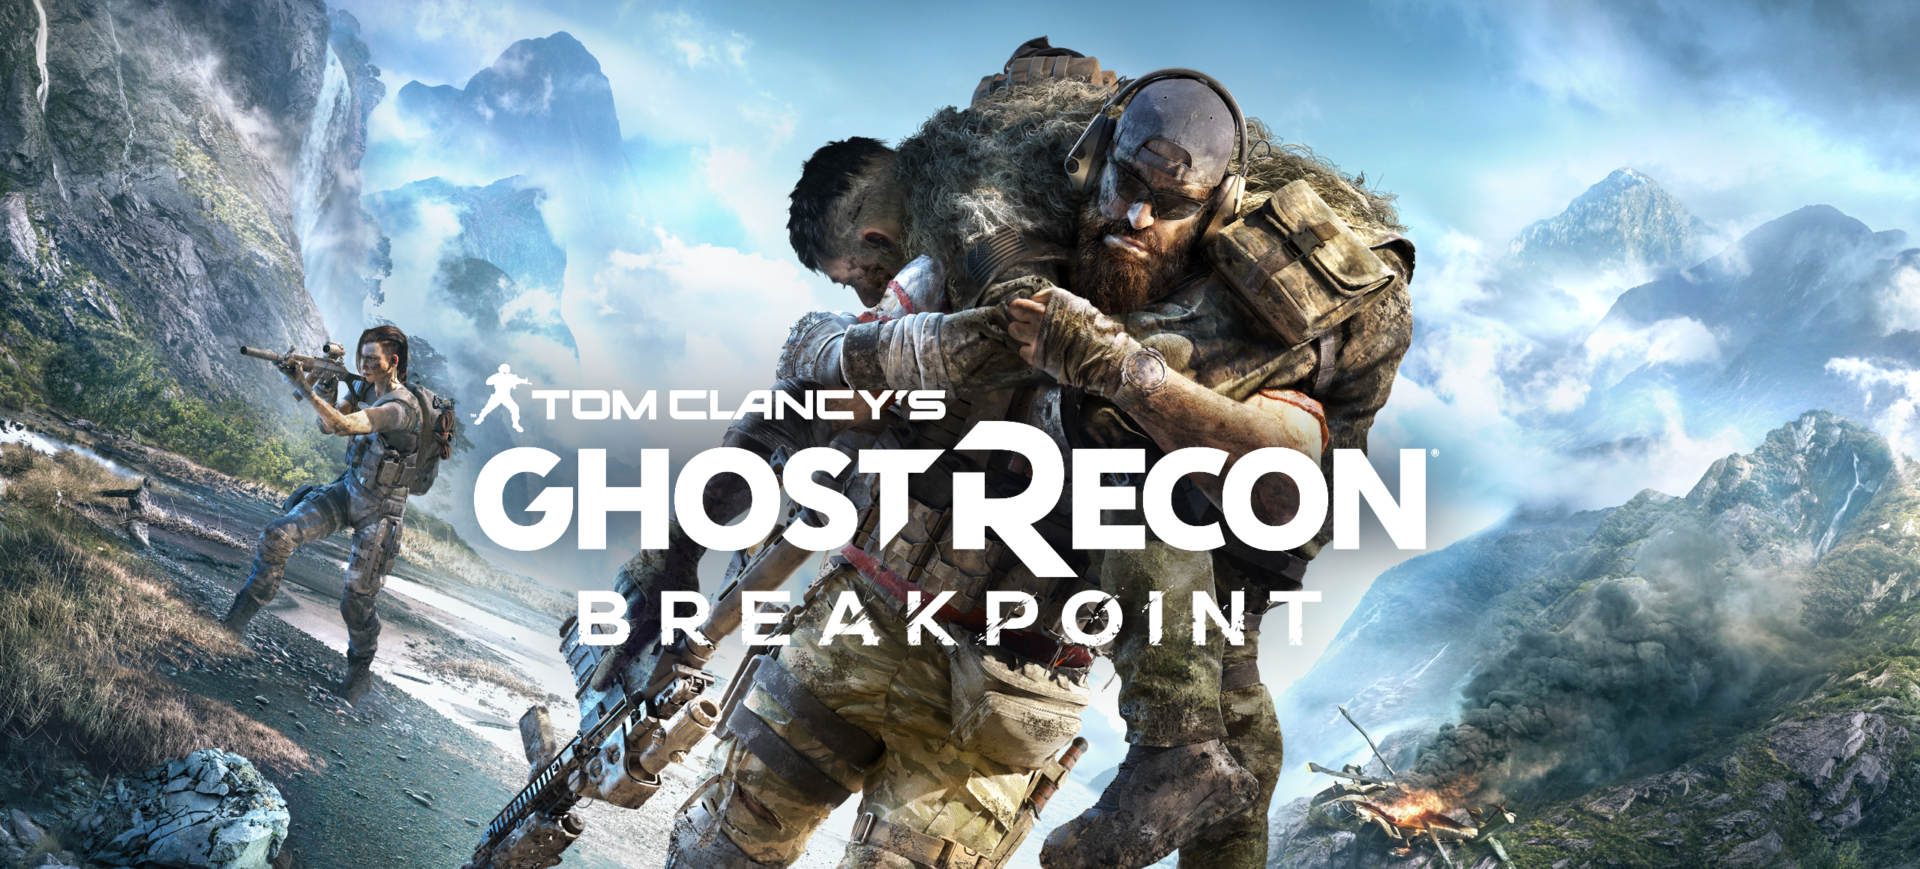 Tom Clancy's Ghost Recon Breakpoint (PS4, Xbox One, PC)